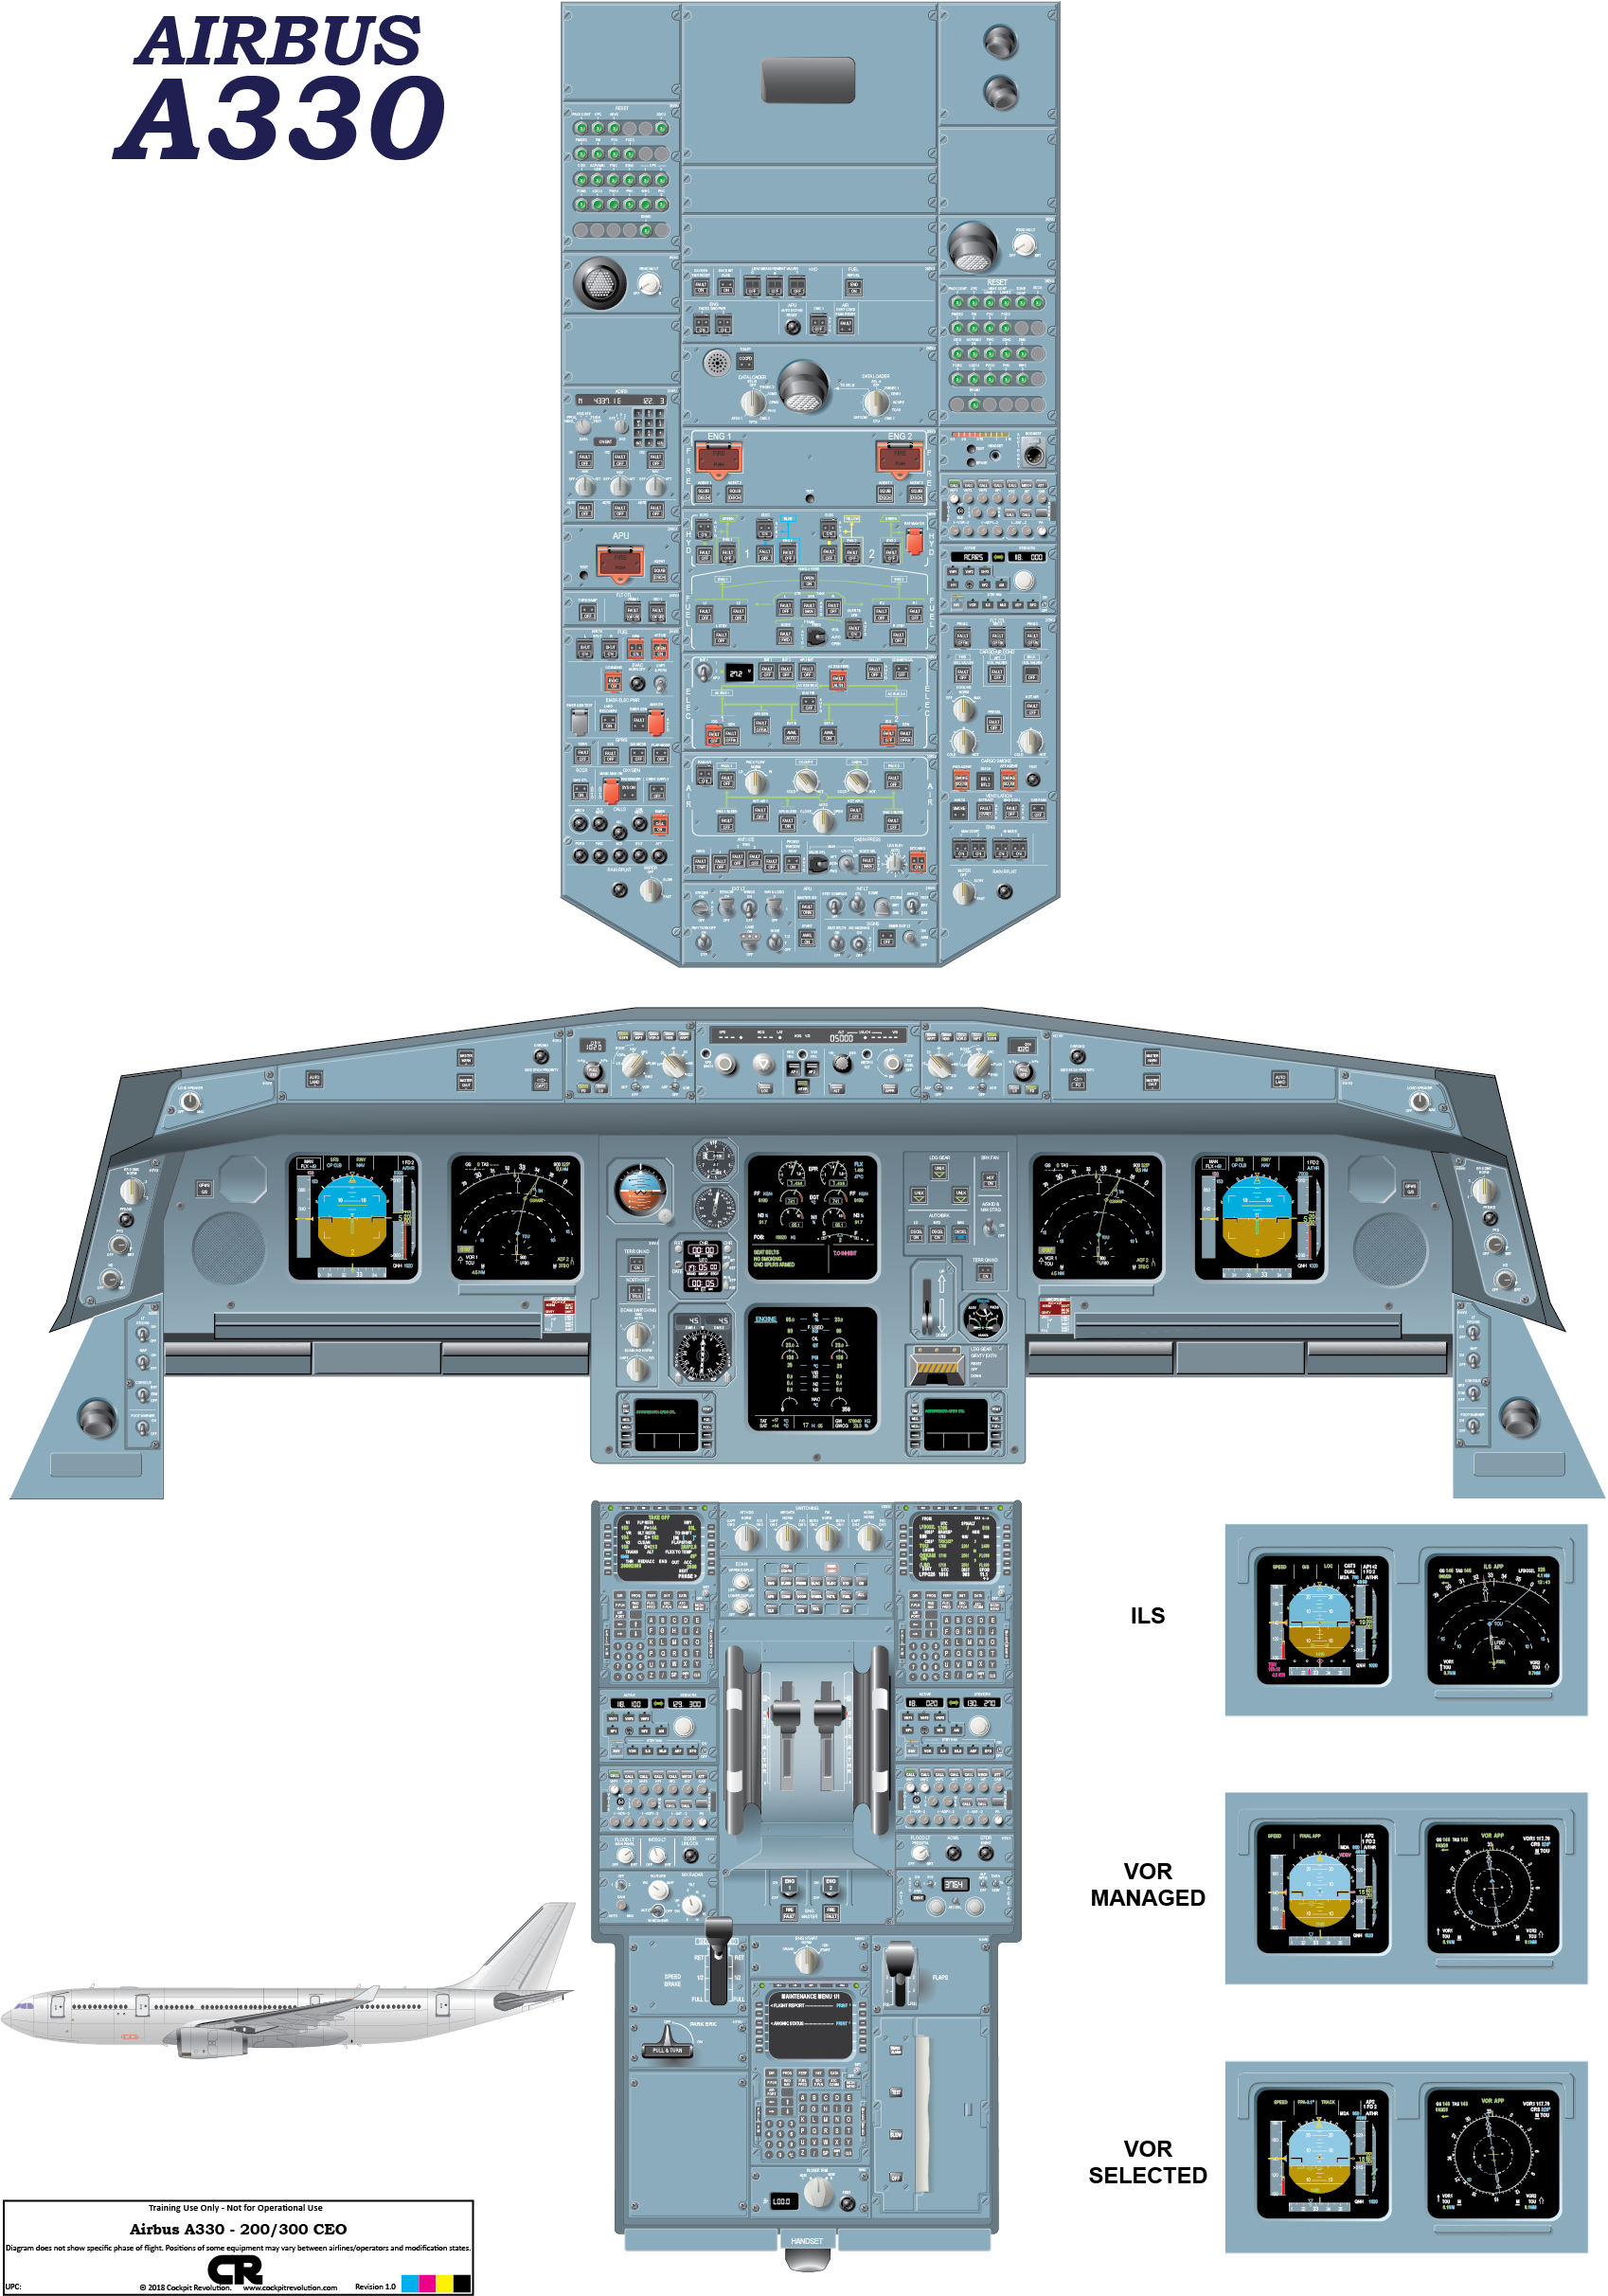 Cockpit poster of the Airbus A330 drawn from manufacturer documents